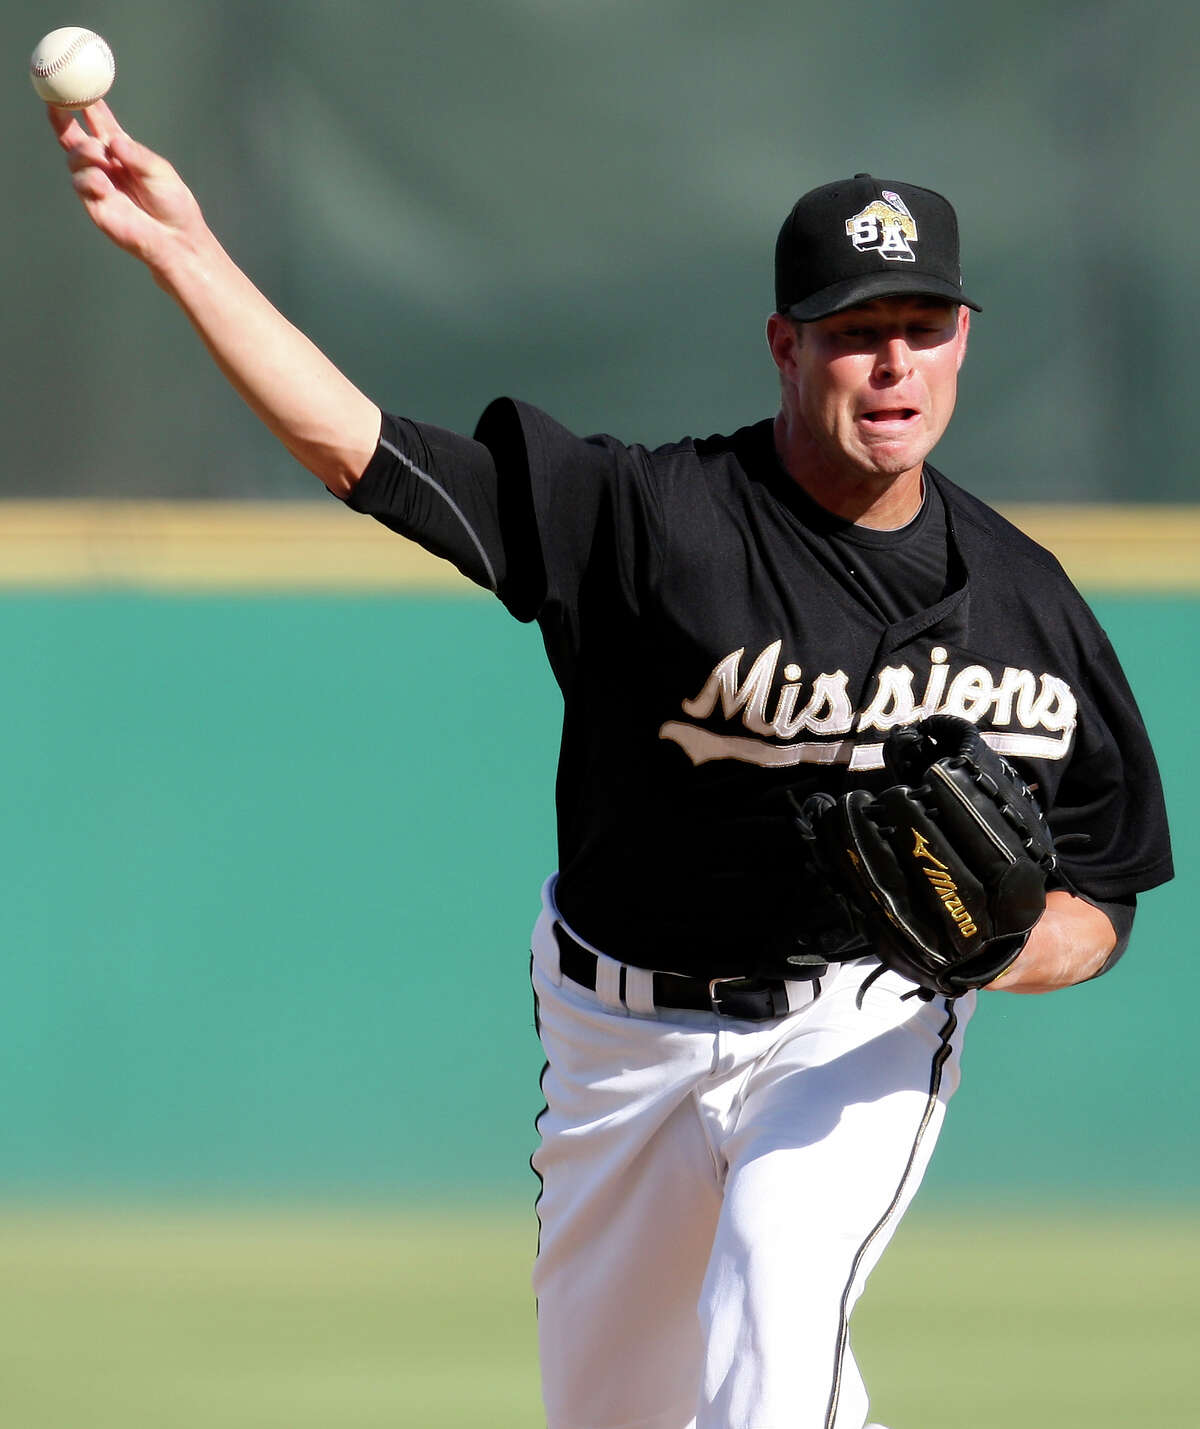 Corey Kluber pitched for the Missions in 2010 at Nelson Wolff Stadium.